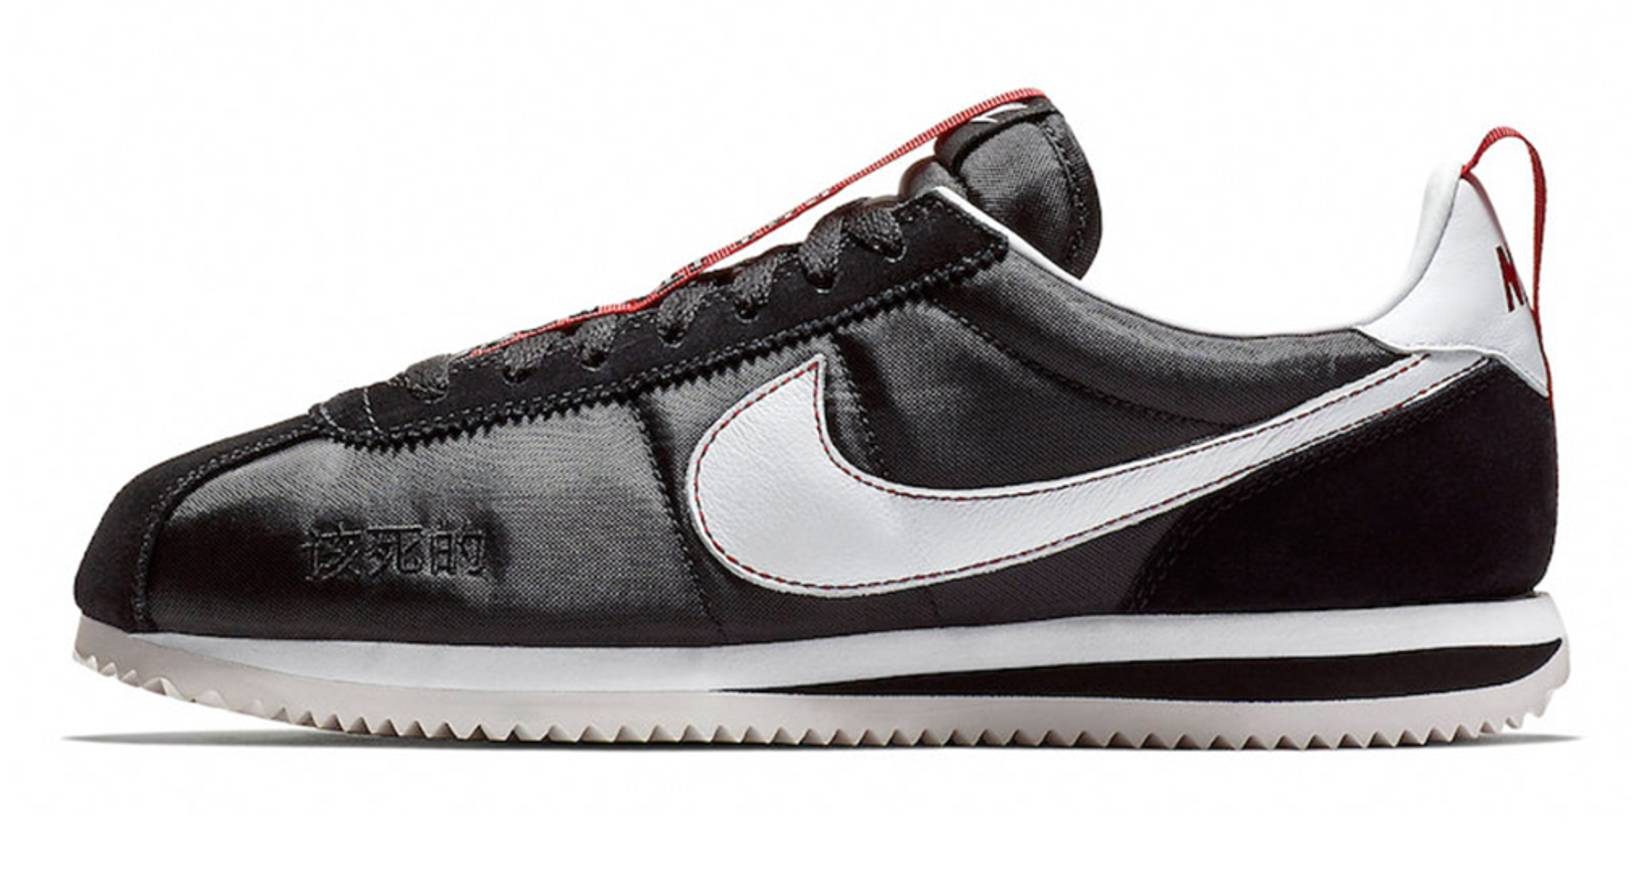 a7bca78f76a2 spain nike cortez kenny 3 kendrick lamar tde the championship 17738 39c73   promo code for nike cortez kenny 3 size us 8.5 eu 41 42 5633c adc0c